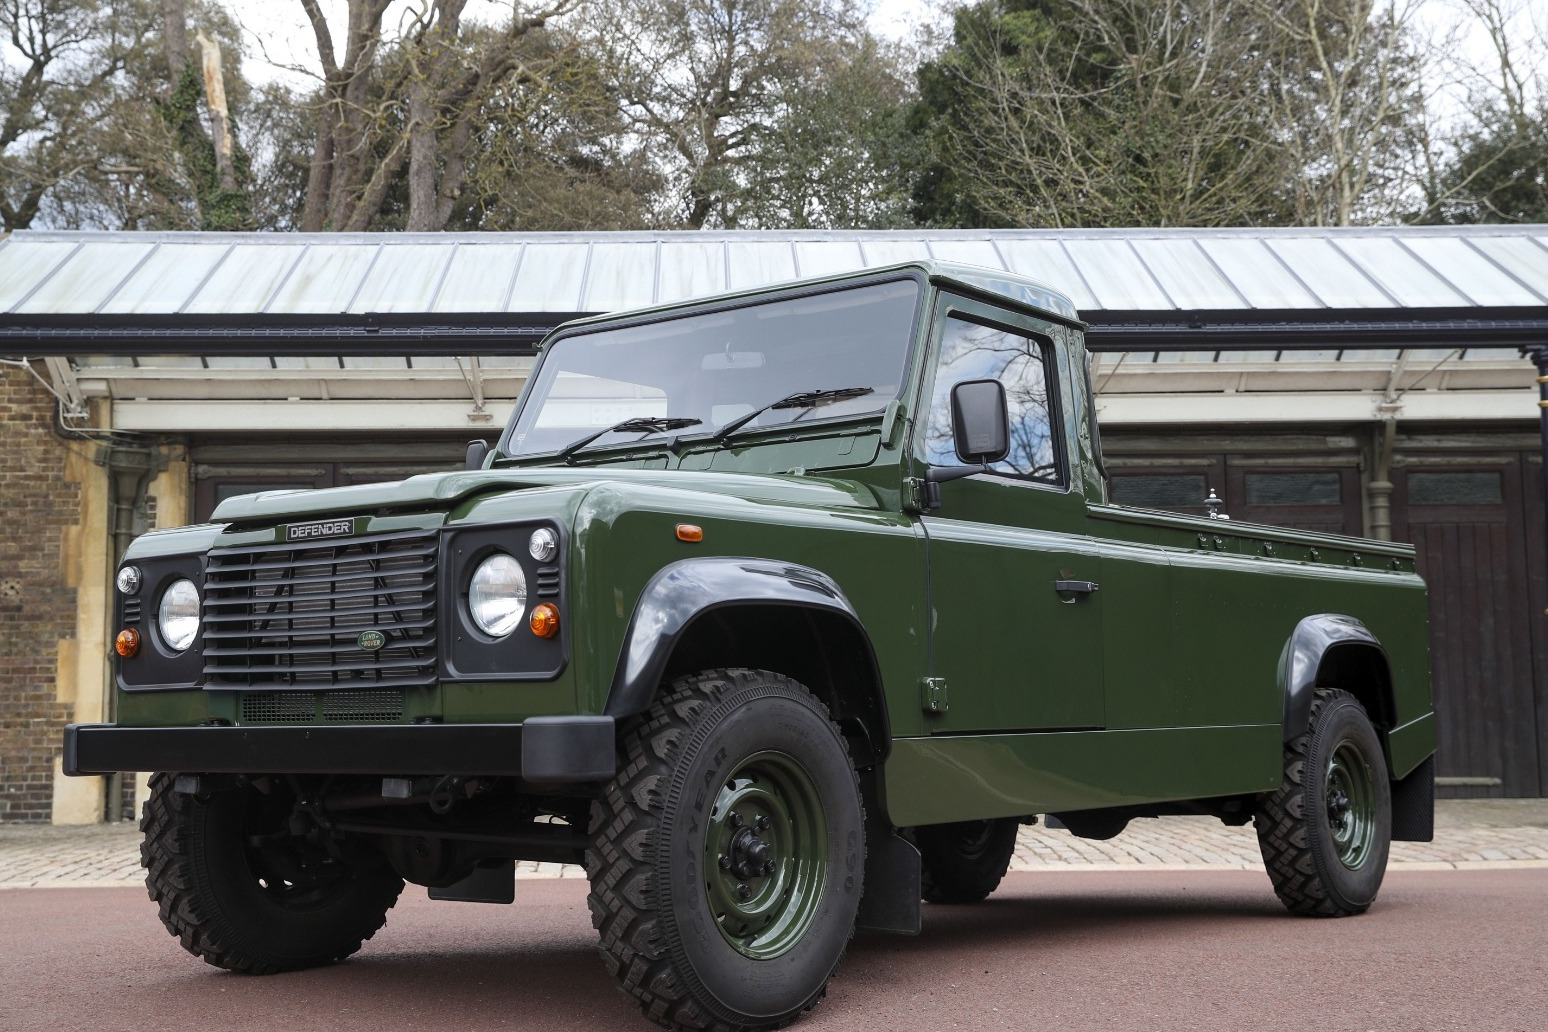 The Duke of Edinburgh's 16-year project to design his own Land Rover hearse